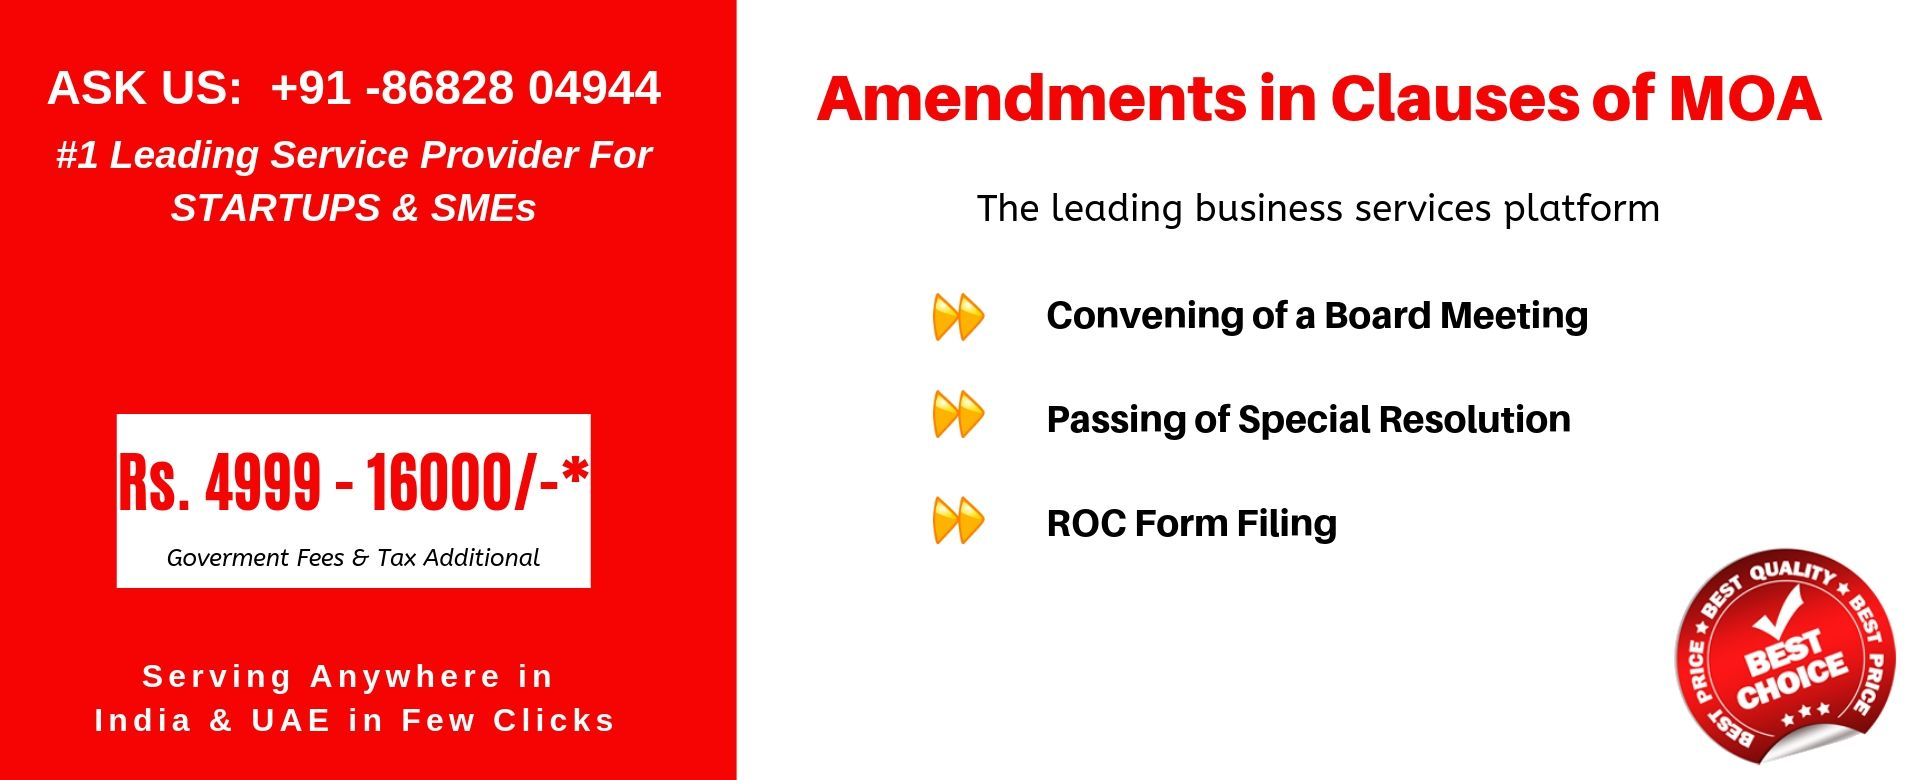 amendments in clauses of moa india